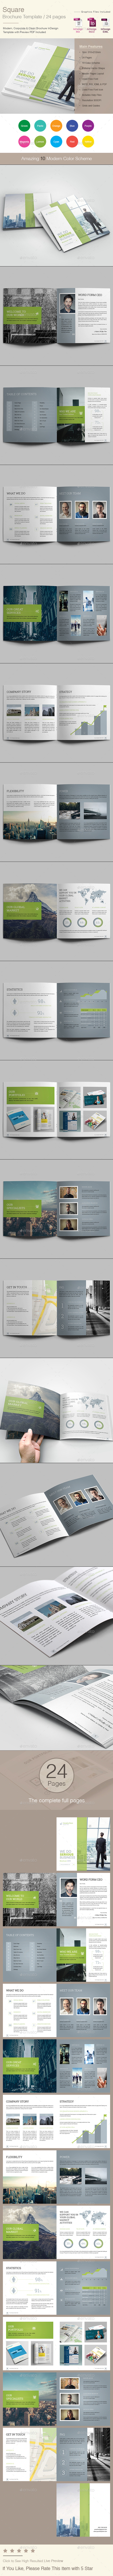 Square Brochure Template - Corporate Brochures